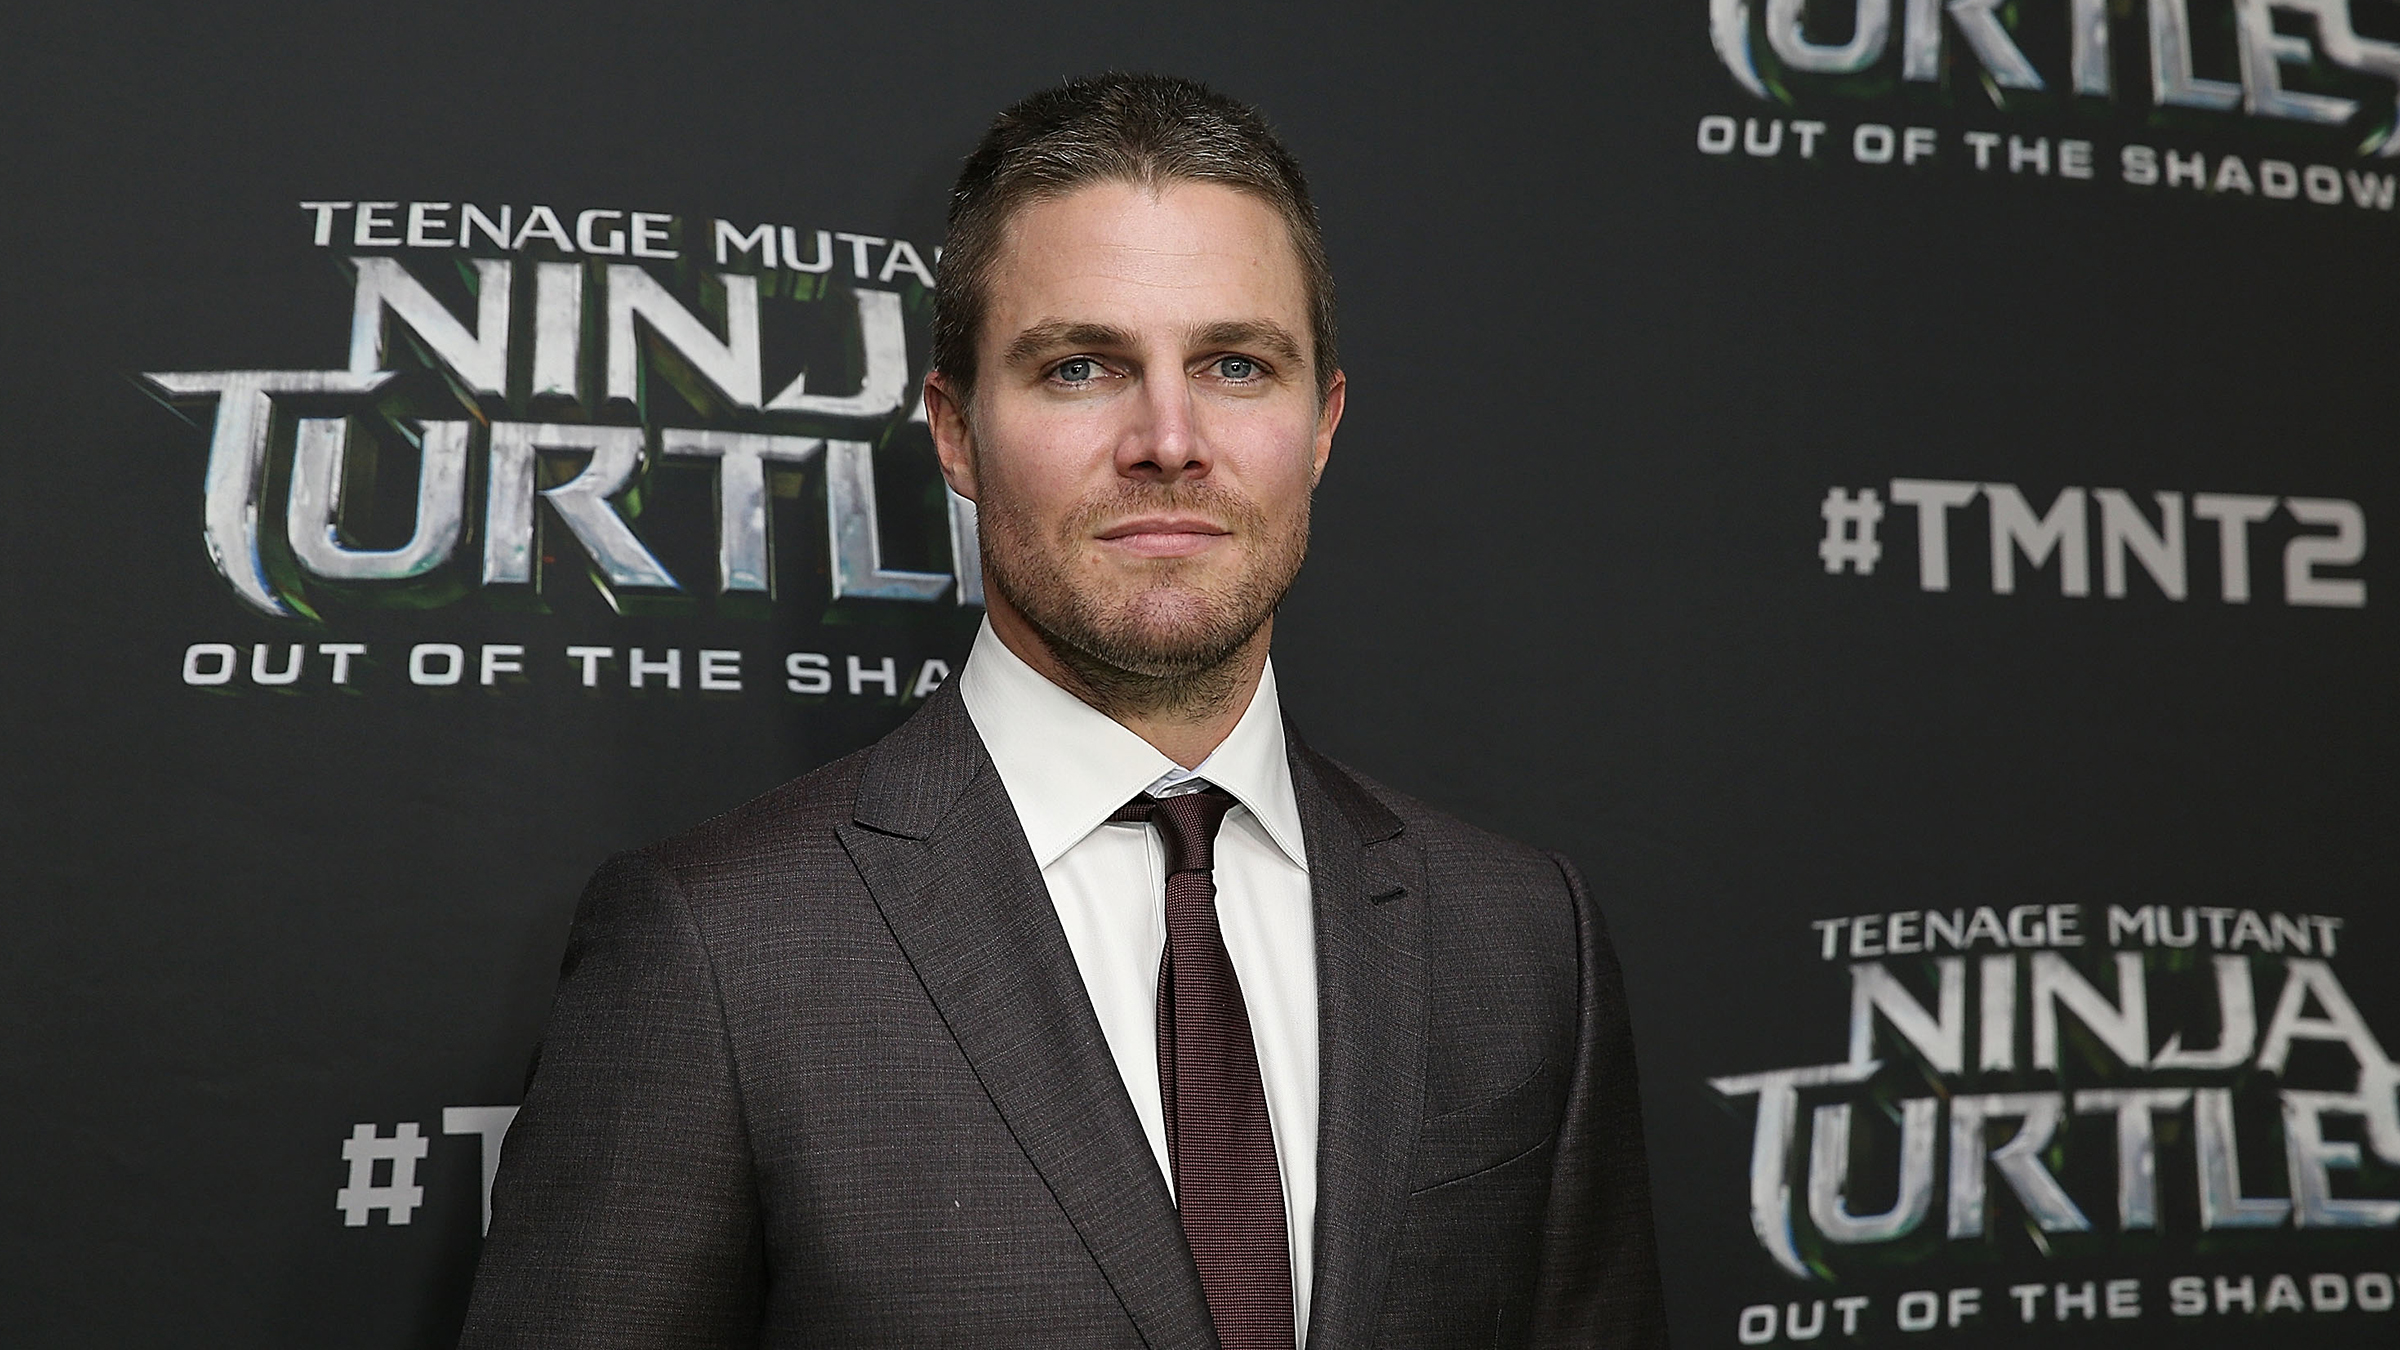 Stephen Amell arrives ahead of the Australian premiere of Teenage Mutant Ninja Turtles 2 at Event Cinemas George Street on May 29, 2016 in Sydney, Australia. (Photo by Brendon Thorne/Getty Images for Paramount Pictures)